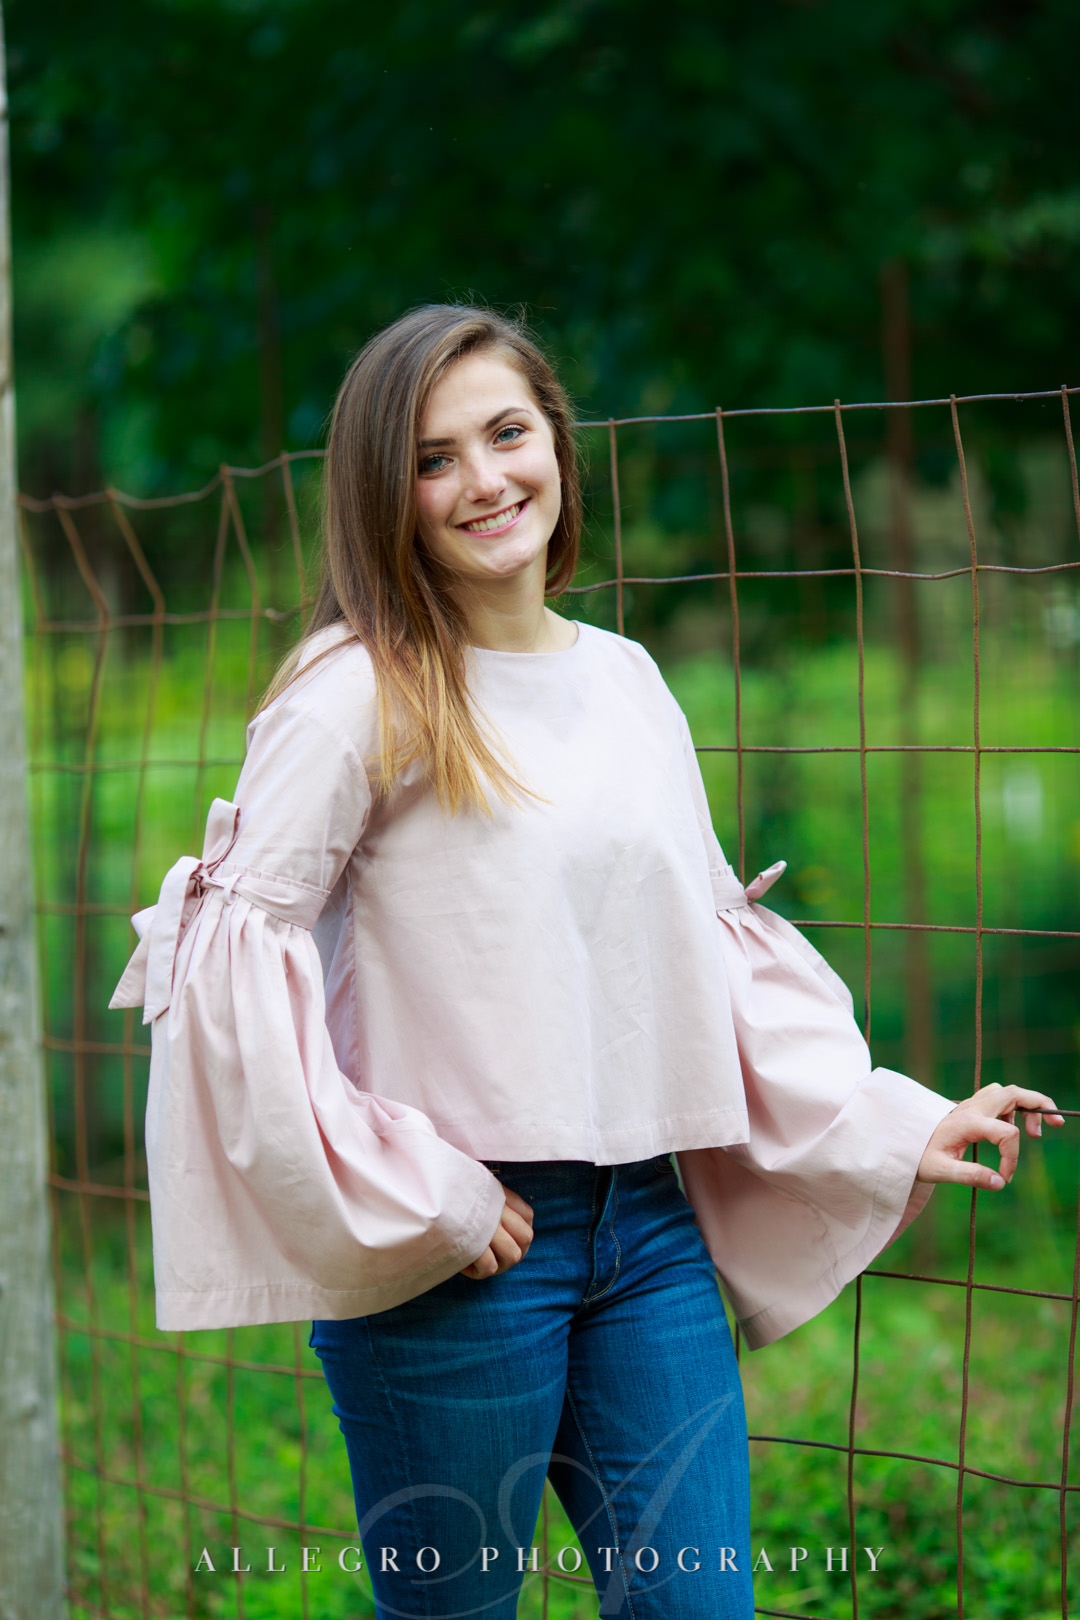 allegro photography senior pics- warm and welcoming girl